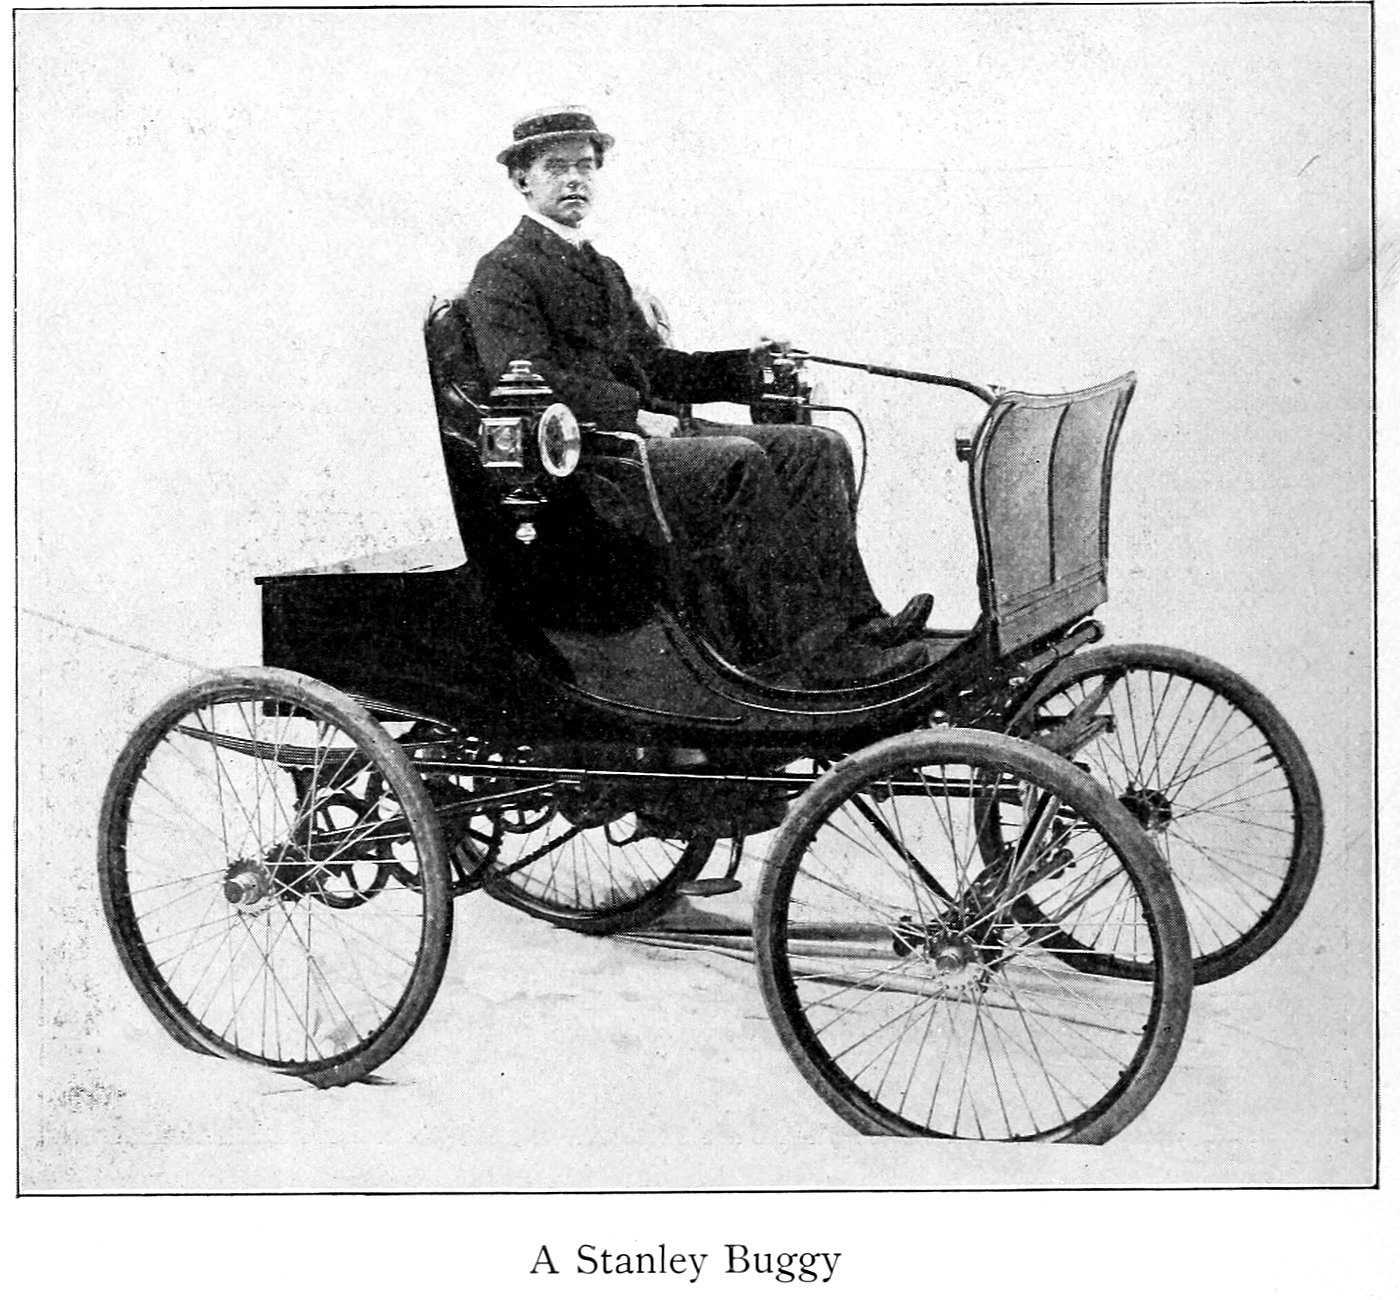 A Stanley Buggy (1899)